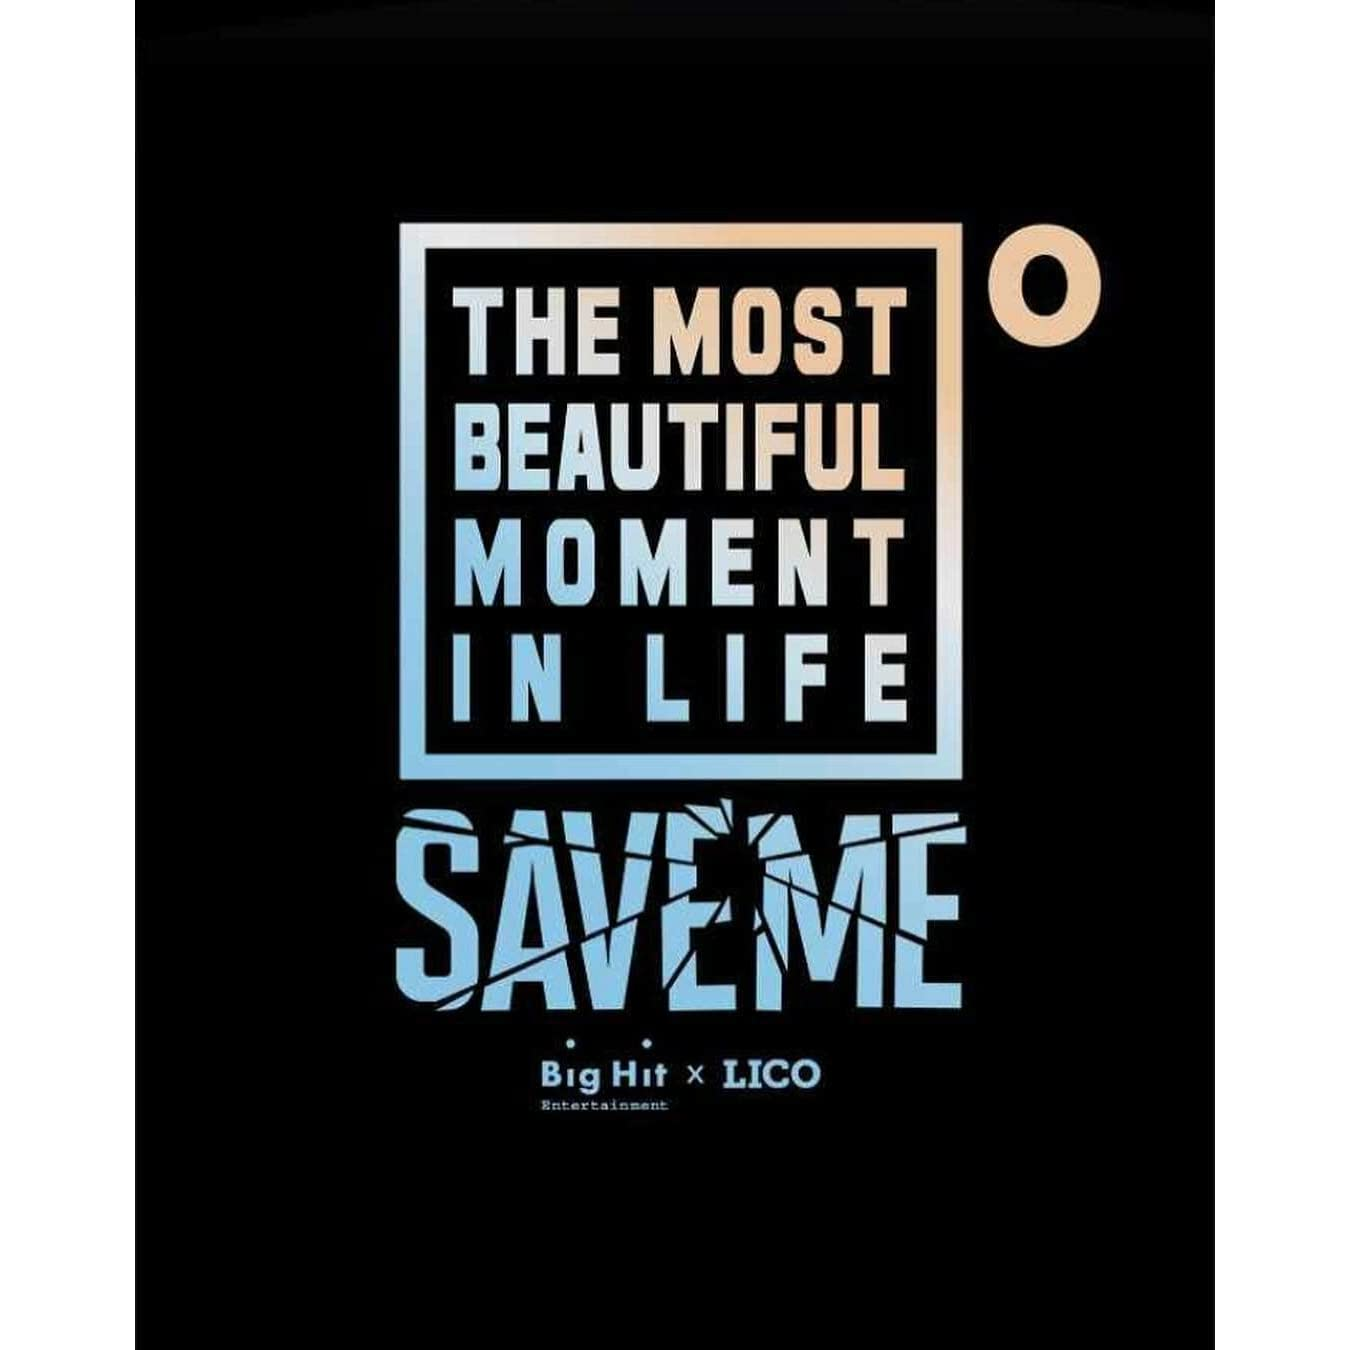 Save Me - BTS Webtoon by Big Hit Entertainment